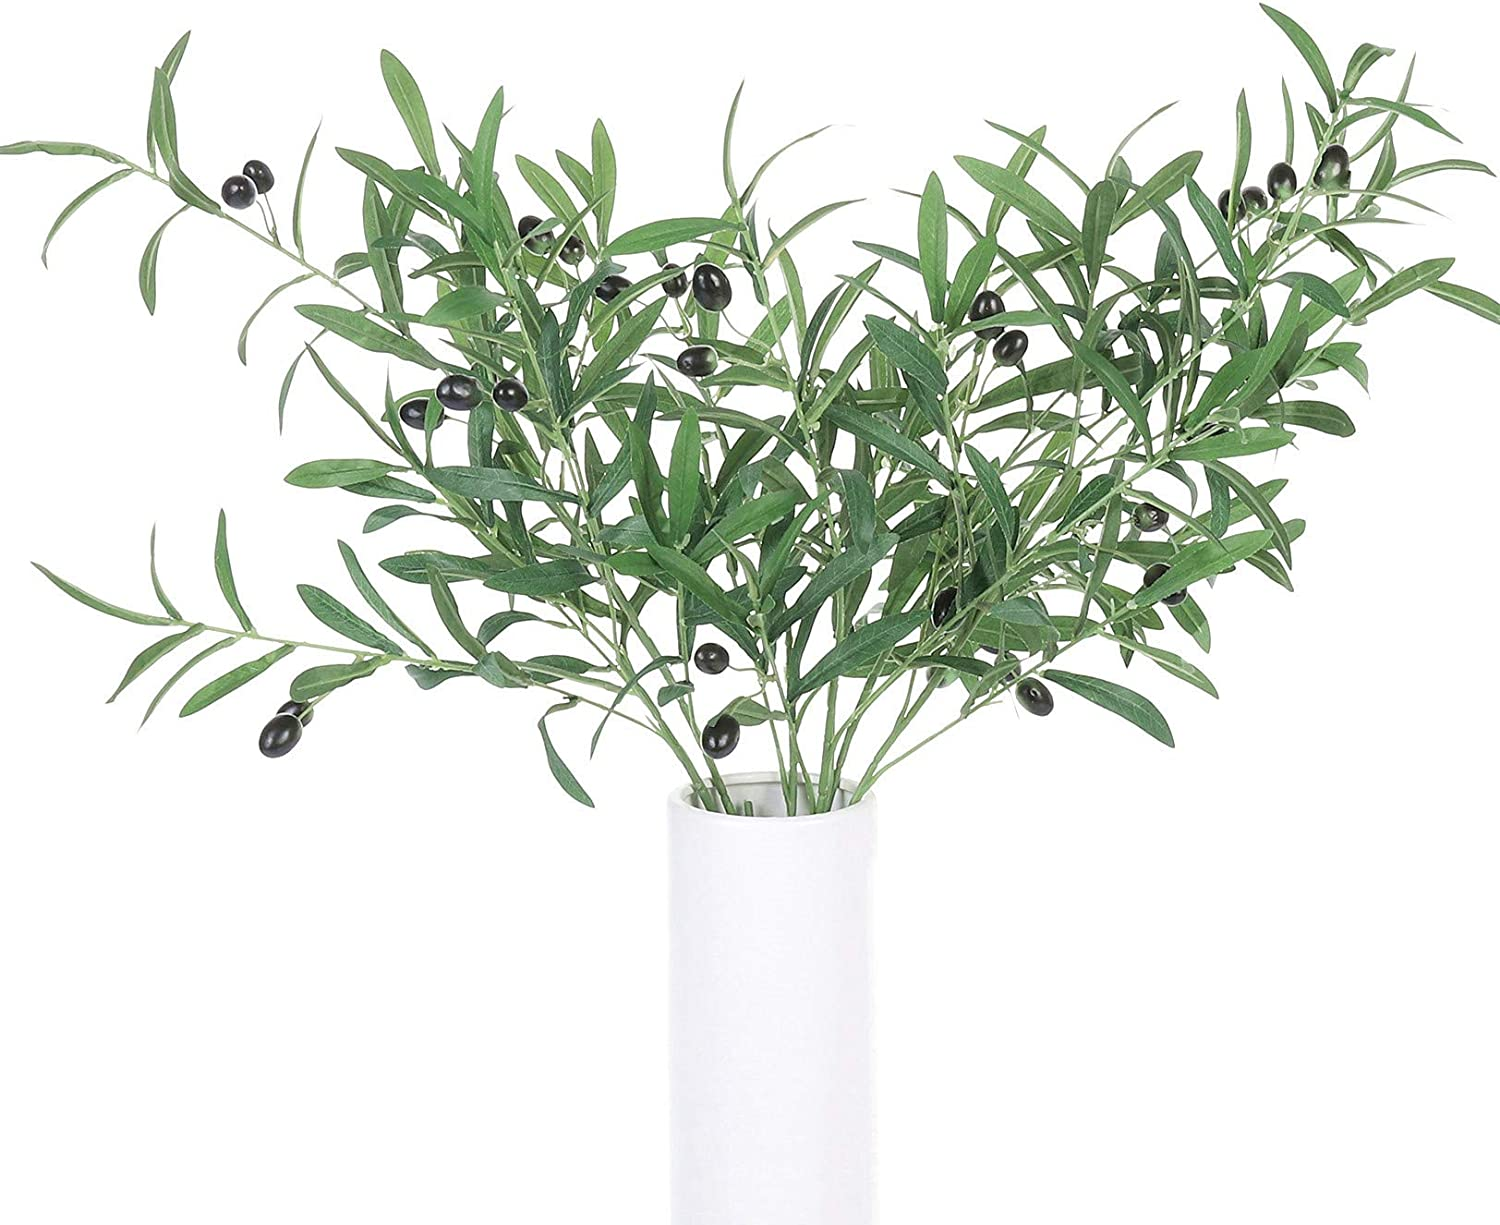 ShoppeWatch Artificial Olive Leaves and Stems with Fruit for Decoration Faux Tree Plant Fake Olives Leaf Home Kitchen Party Plastic Decor AF17